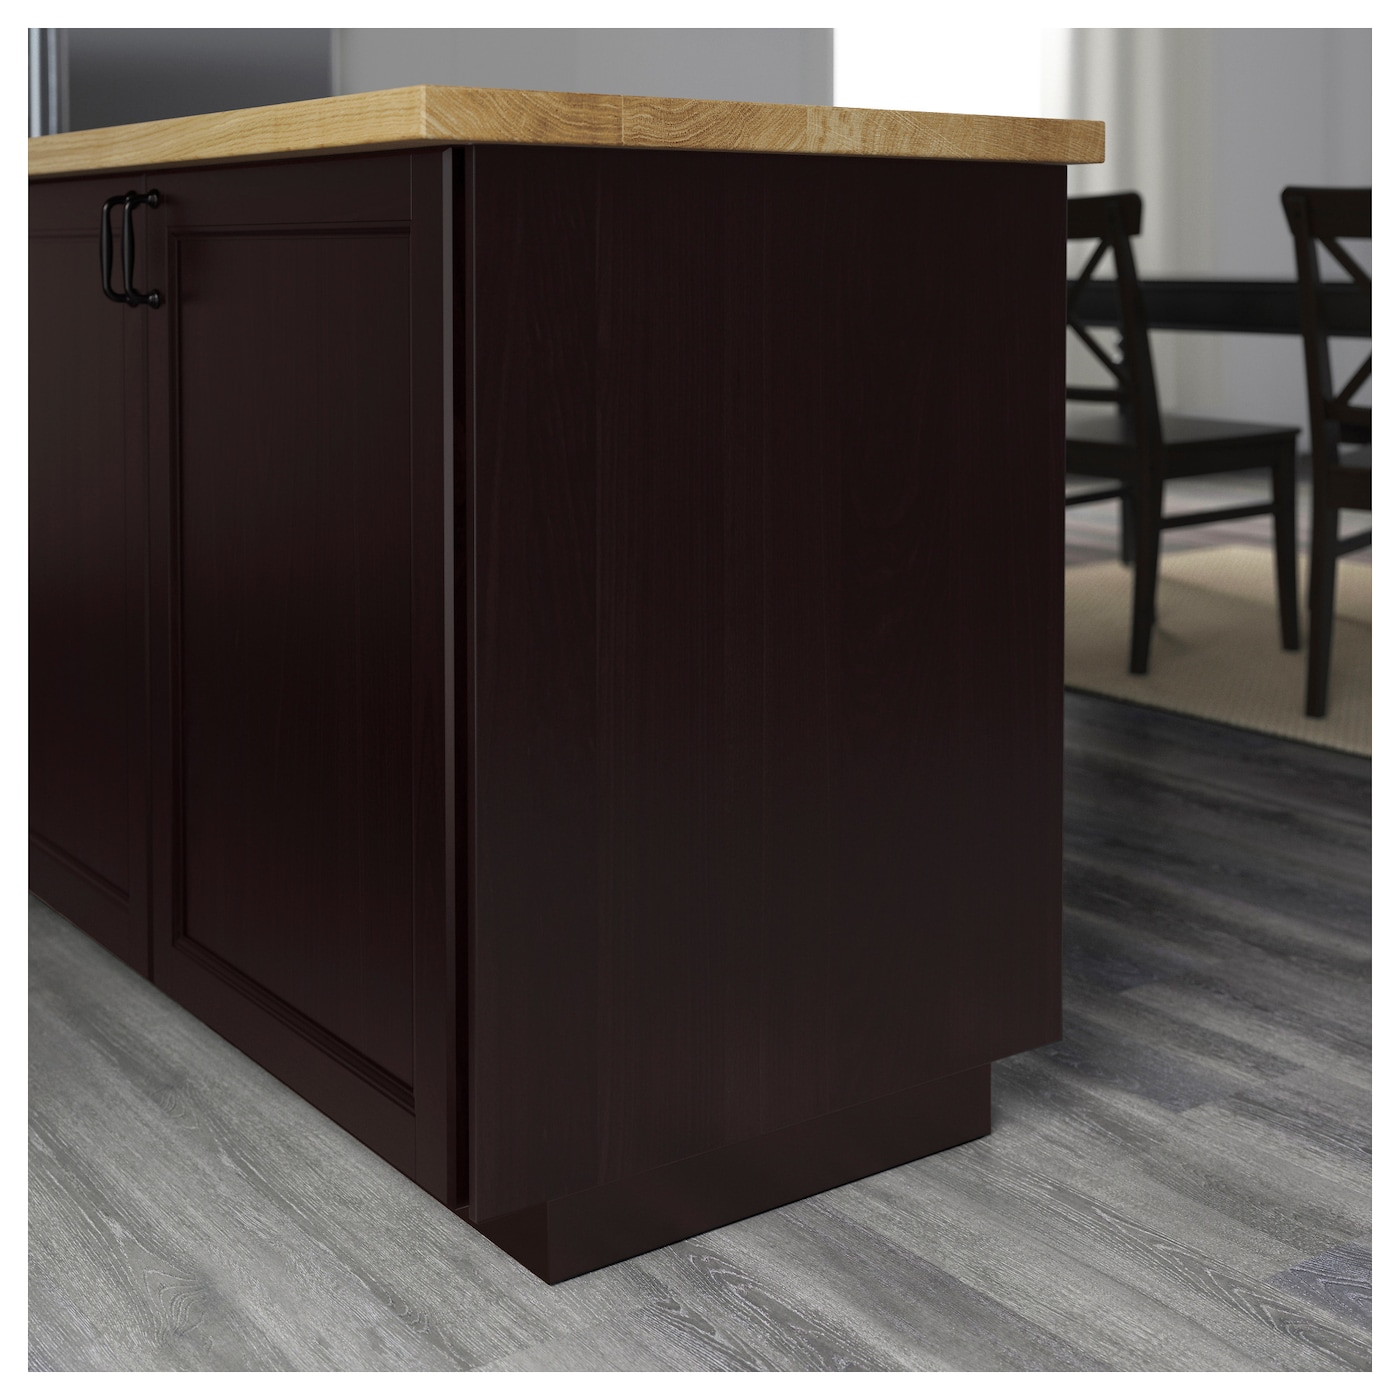 Ikea Kitchen Laxarby: LAXARBY Cover Panel Black-brown 62x220 Cm